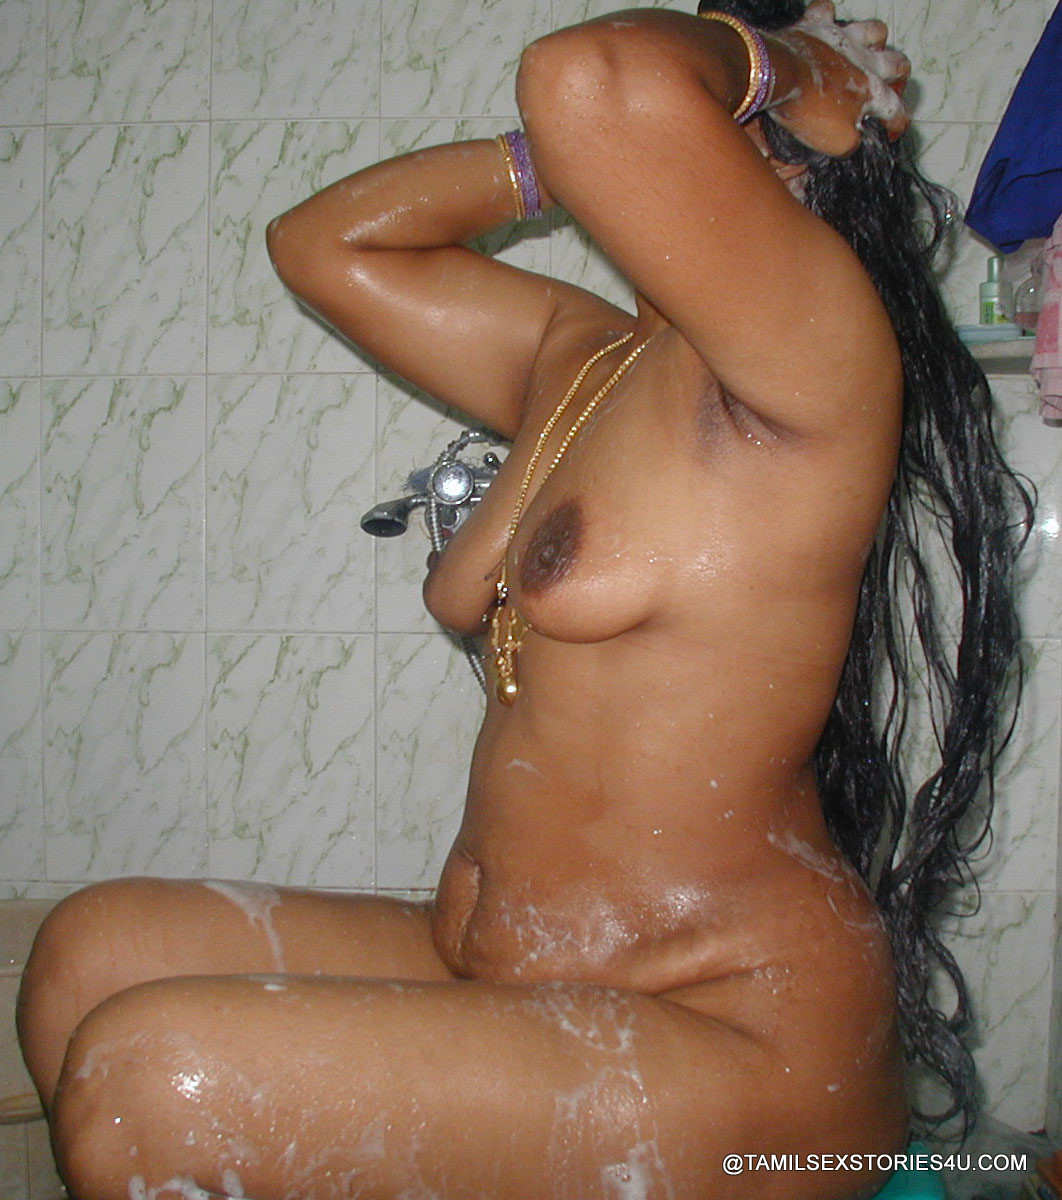 Tamil sex story desi with